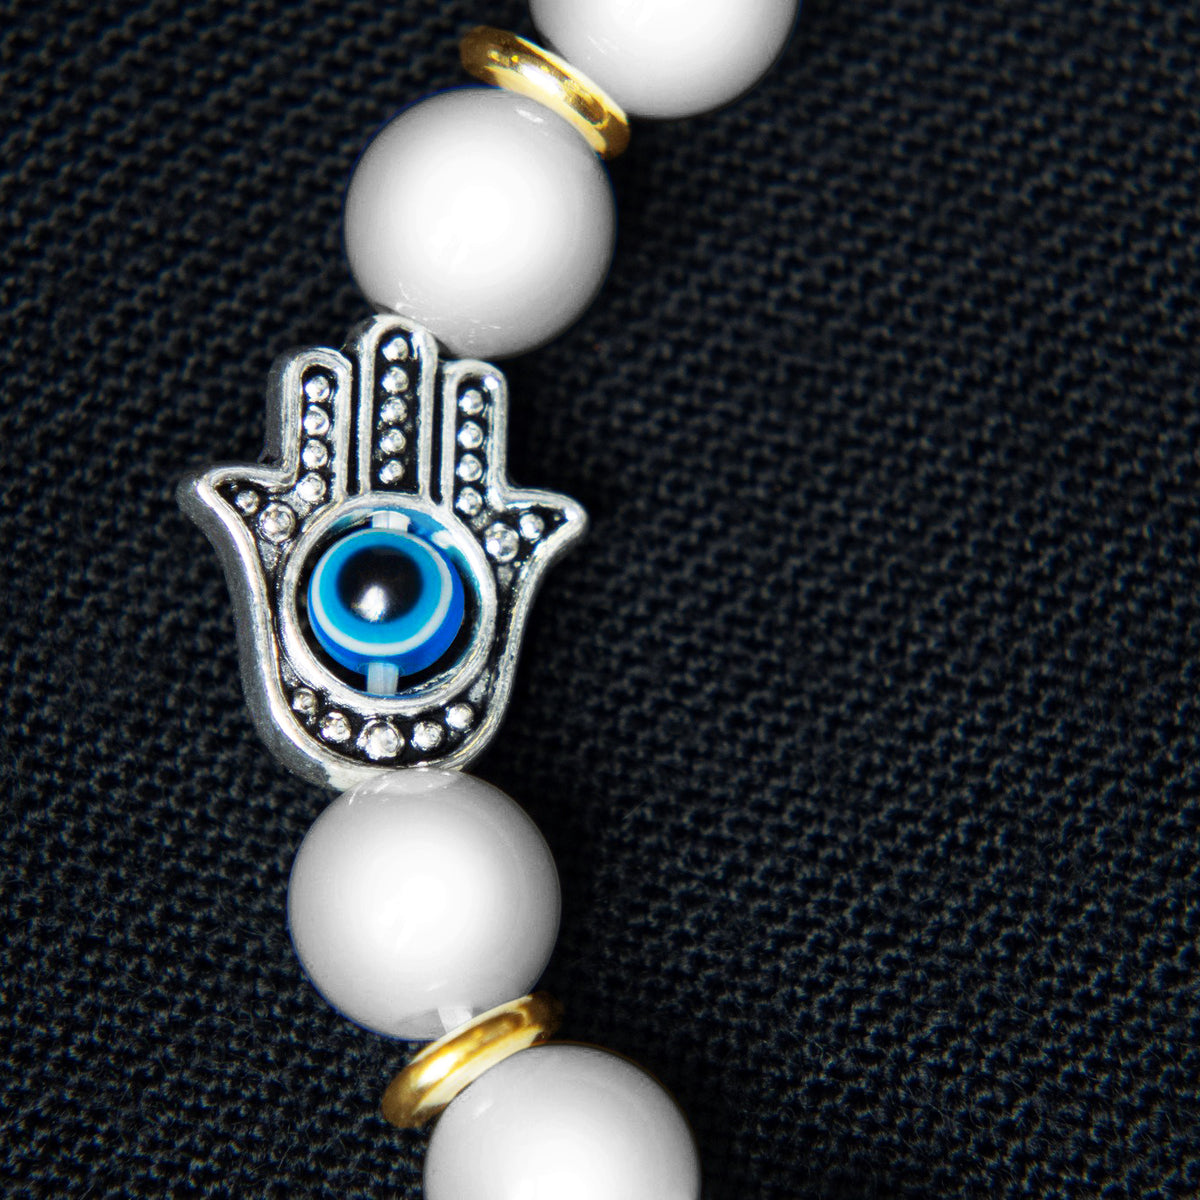 White Agate Beads with Hamsa Hand Charm Featuring Third Eye Chakra